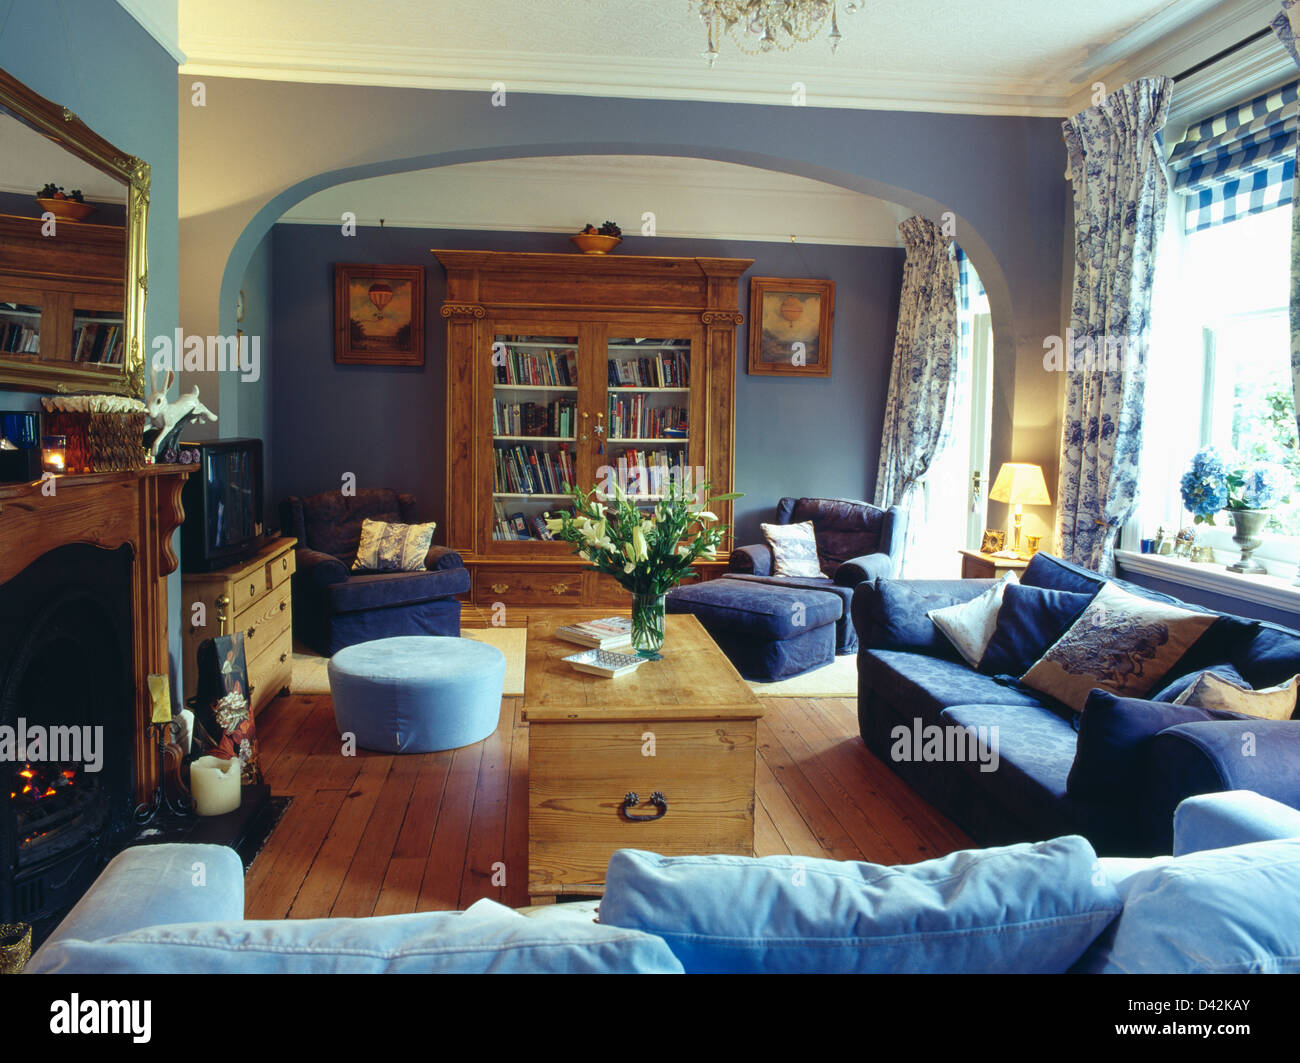 dark blue sofa living room traditional pictures pale and sofas pine chest in with floral curtains wooden floor large cupboard